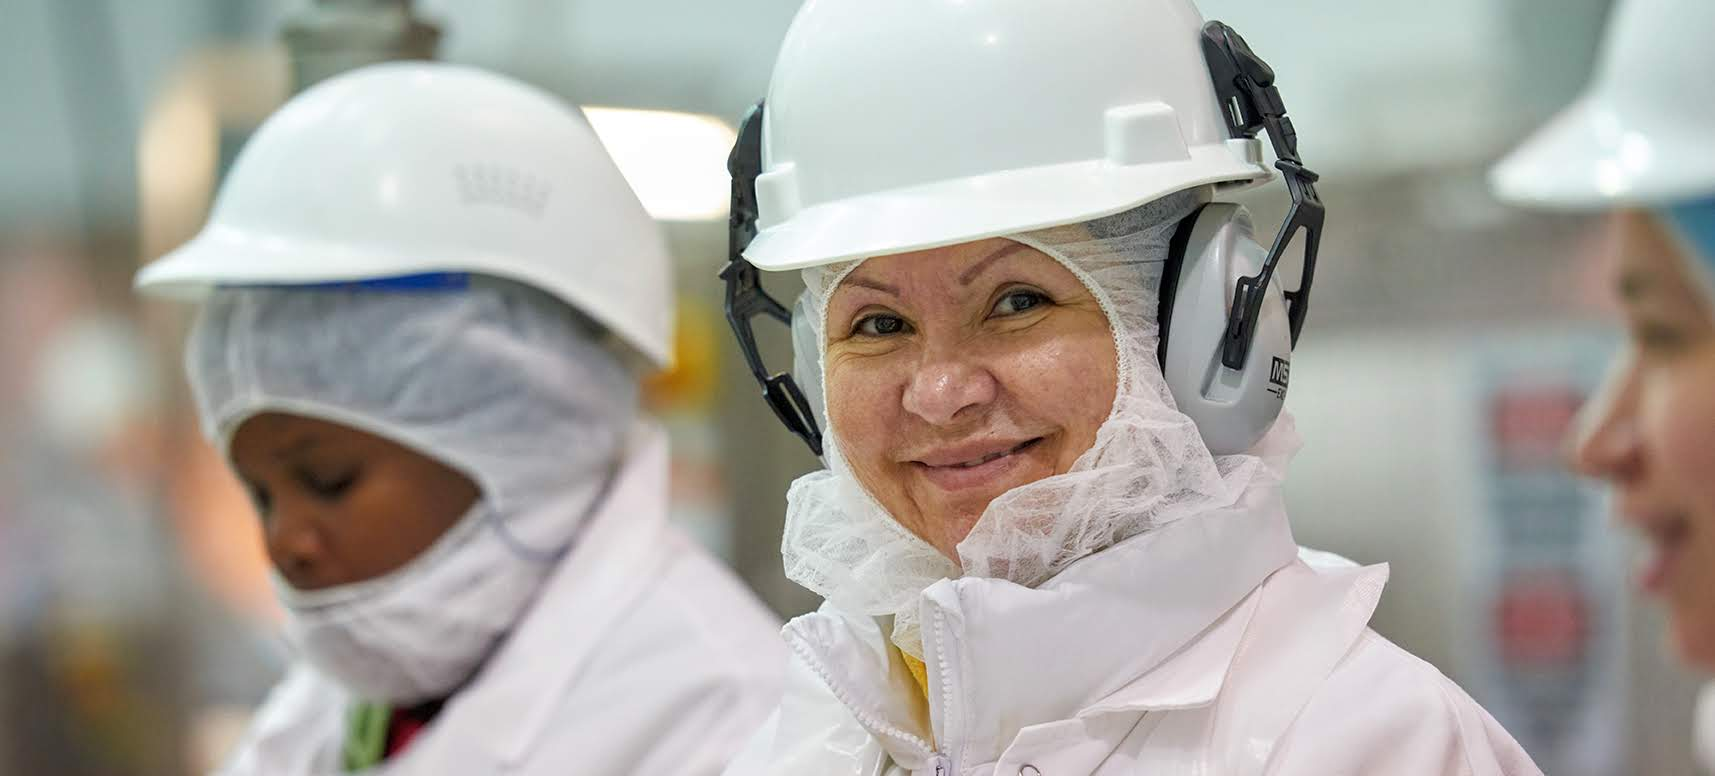 Two plant workers in white protective gear smiling